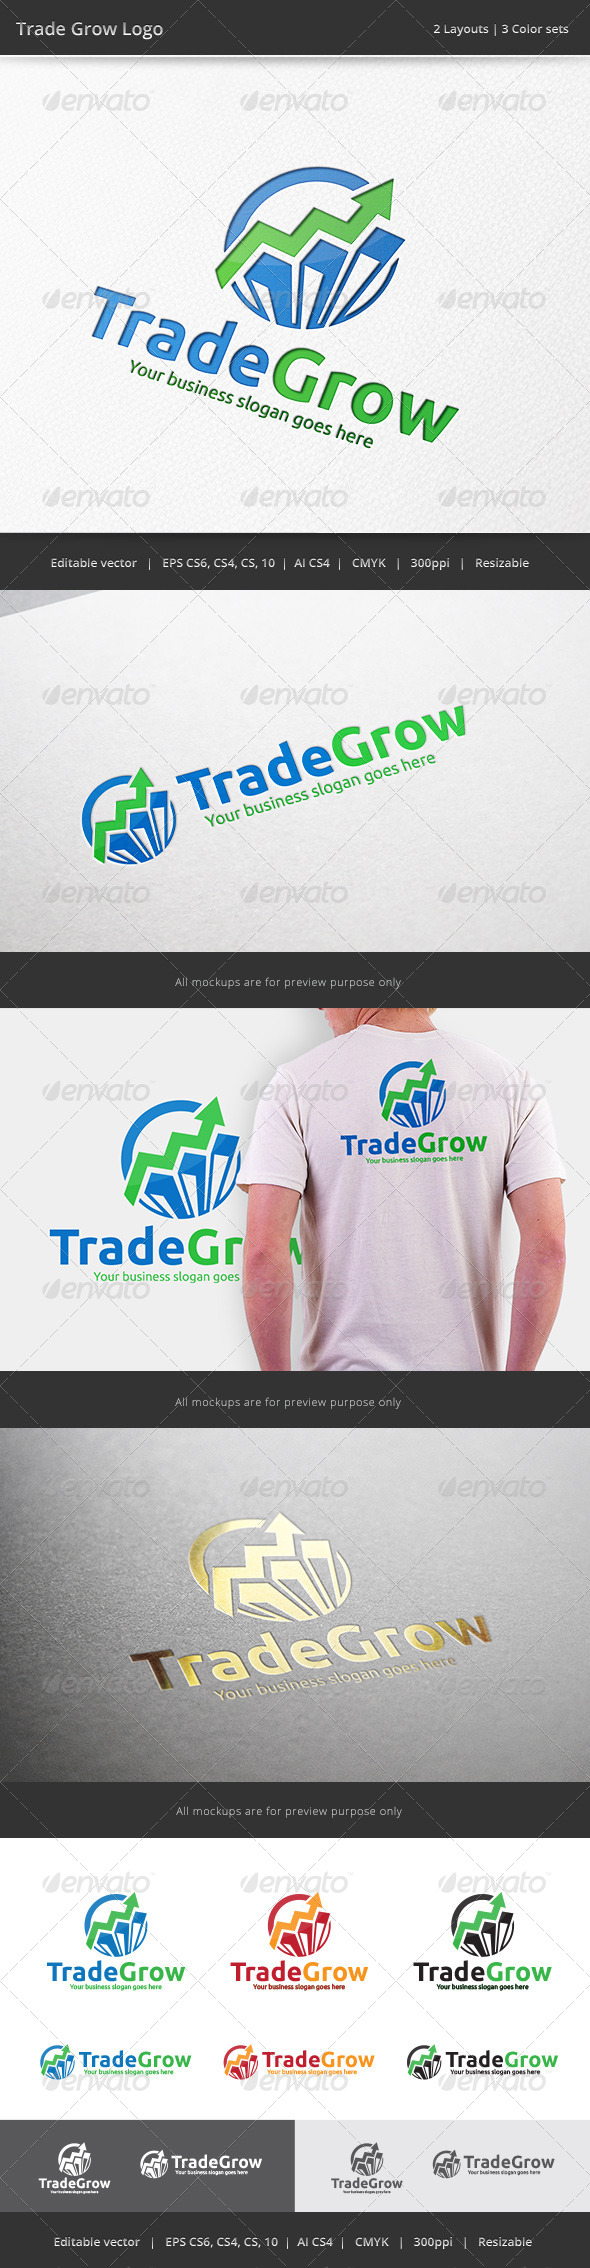 GraphicRiver Trade Grow Finance Logo 7565732